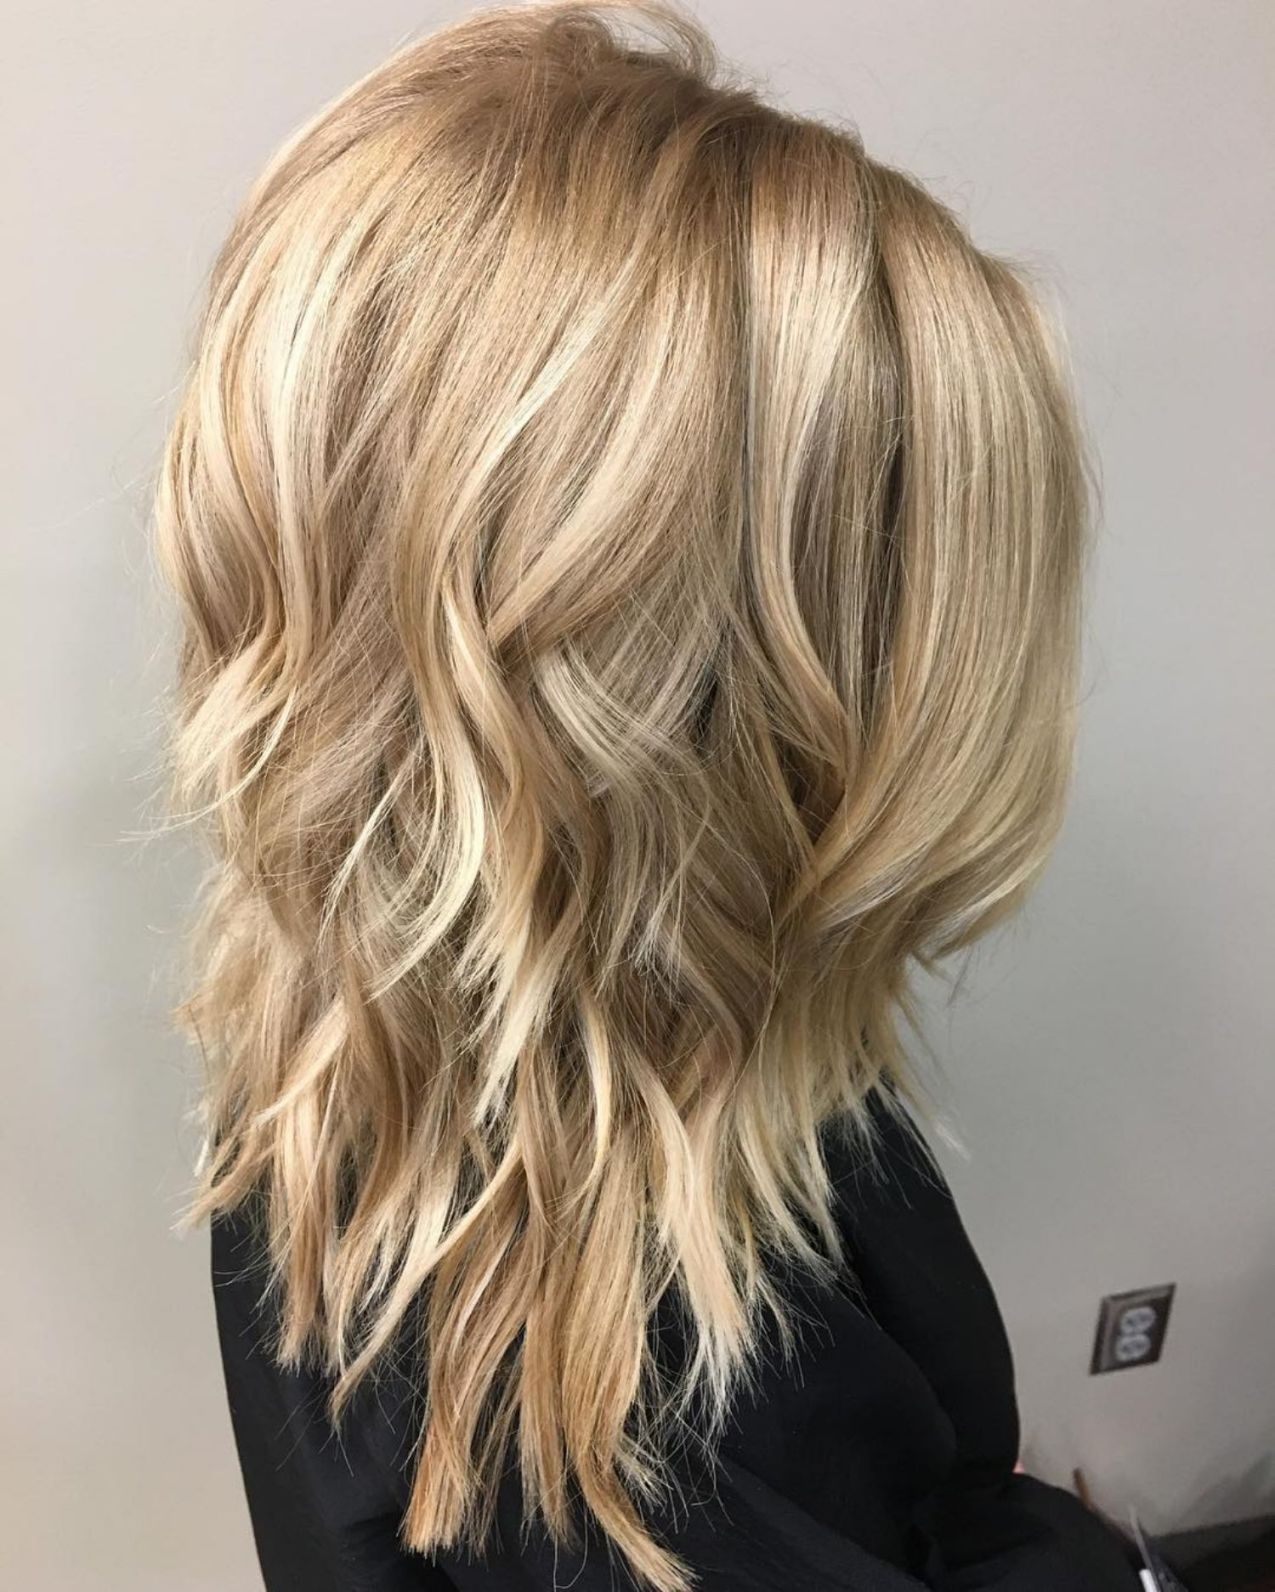 Shoulder Length Hairstyle With Medium Layers Hair Styles Long Hair Styles Haircuts For Medium Hair